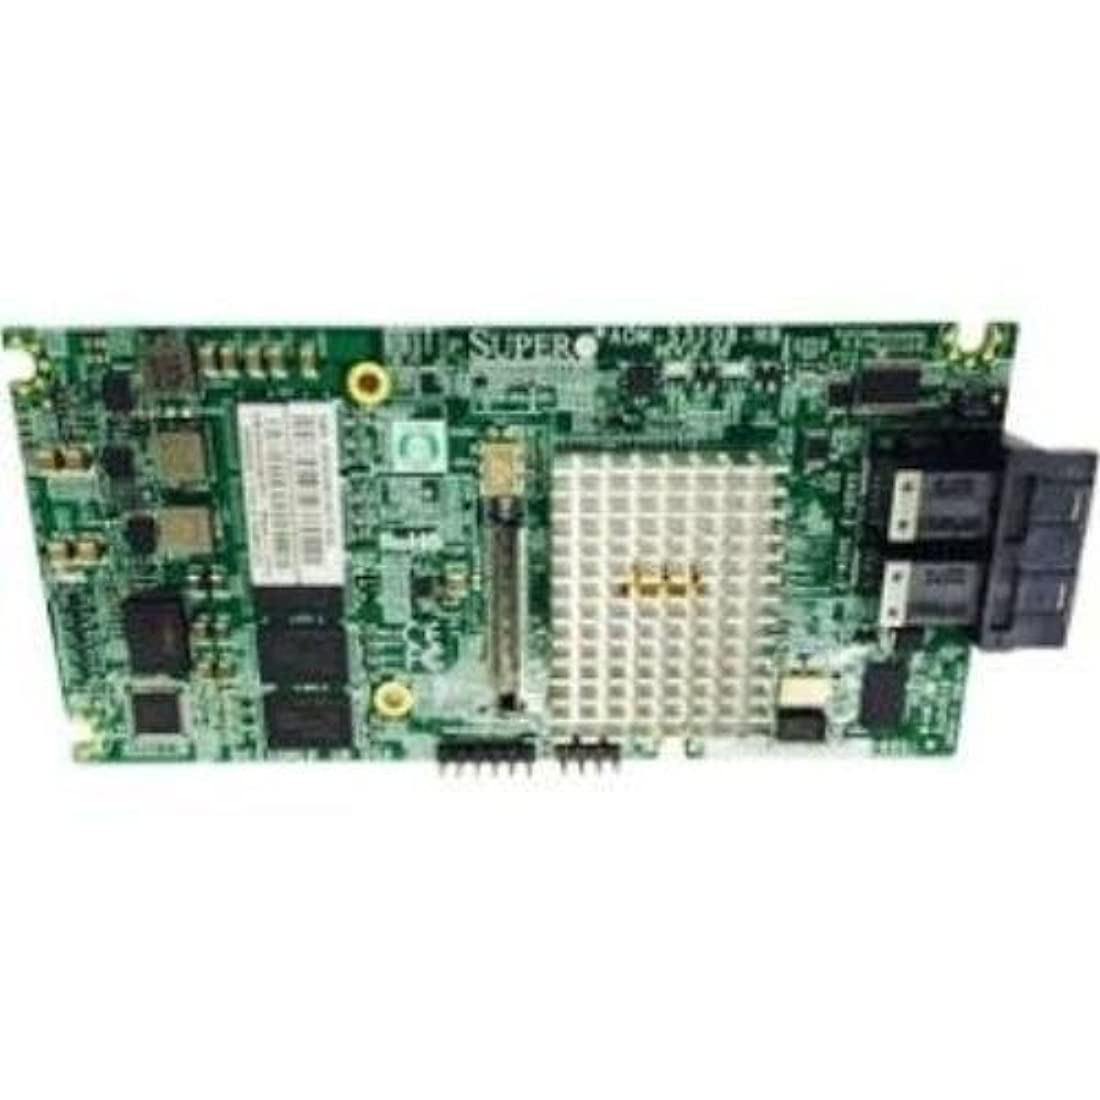 アッティカスウィスキー演じるSupermicro AOM-S3108M-H8 - Storage controller (RAID) - 8 Channel - SAS 12Gb/s low profile - 1.2 GBps - RAID 0, 1, 5, 6, 10, 50, 60 - PCIe